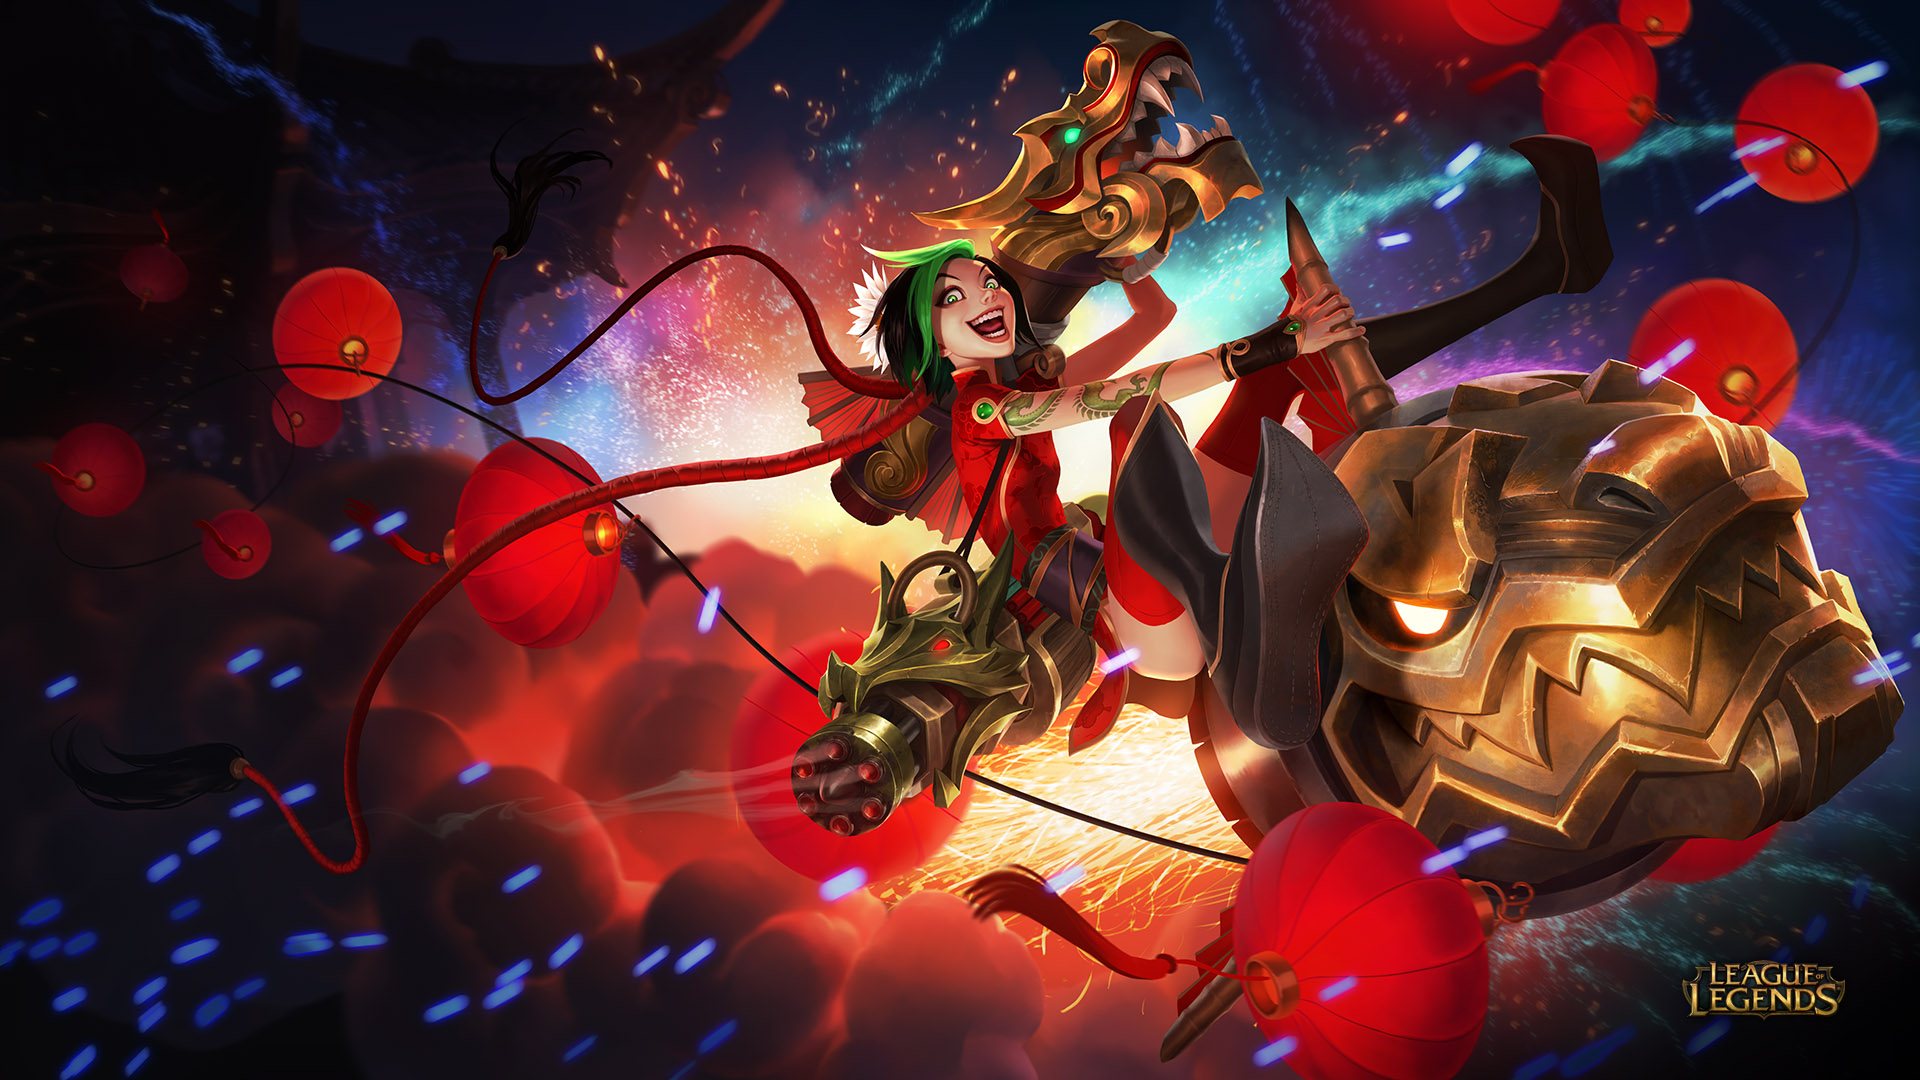 Firecracker_Jinx_Splash_1920x1080